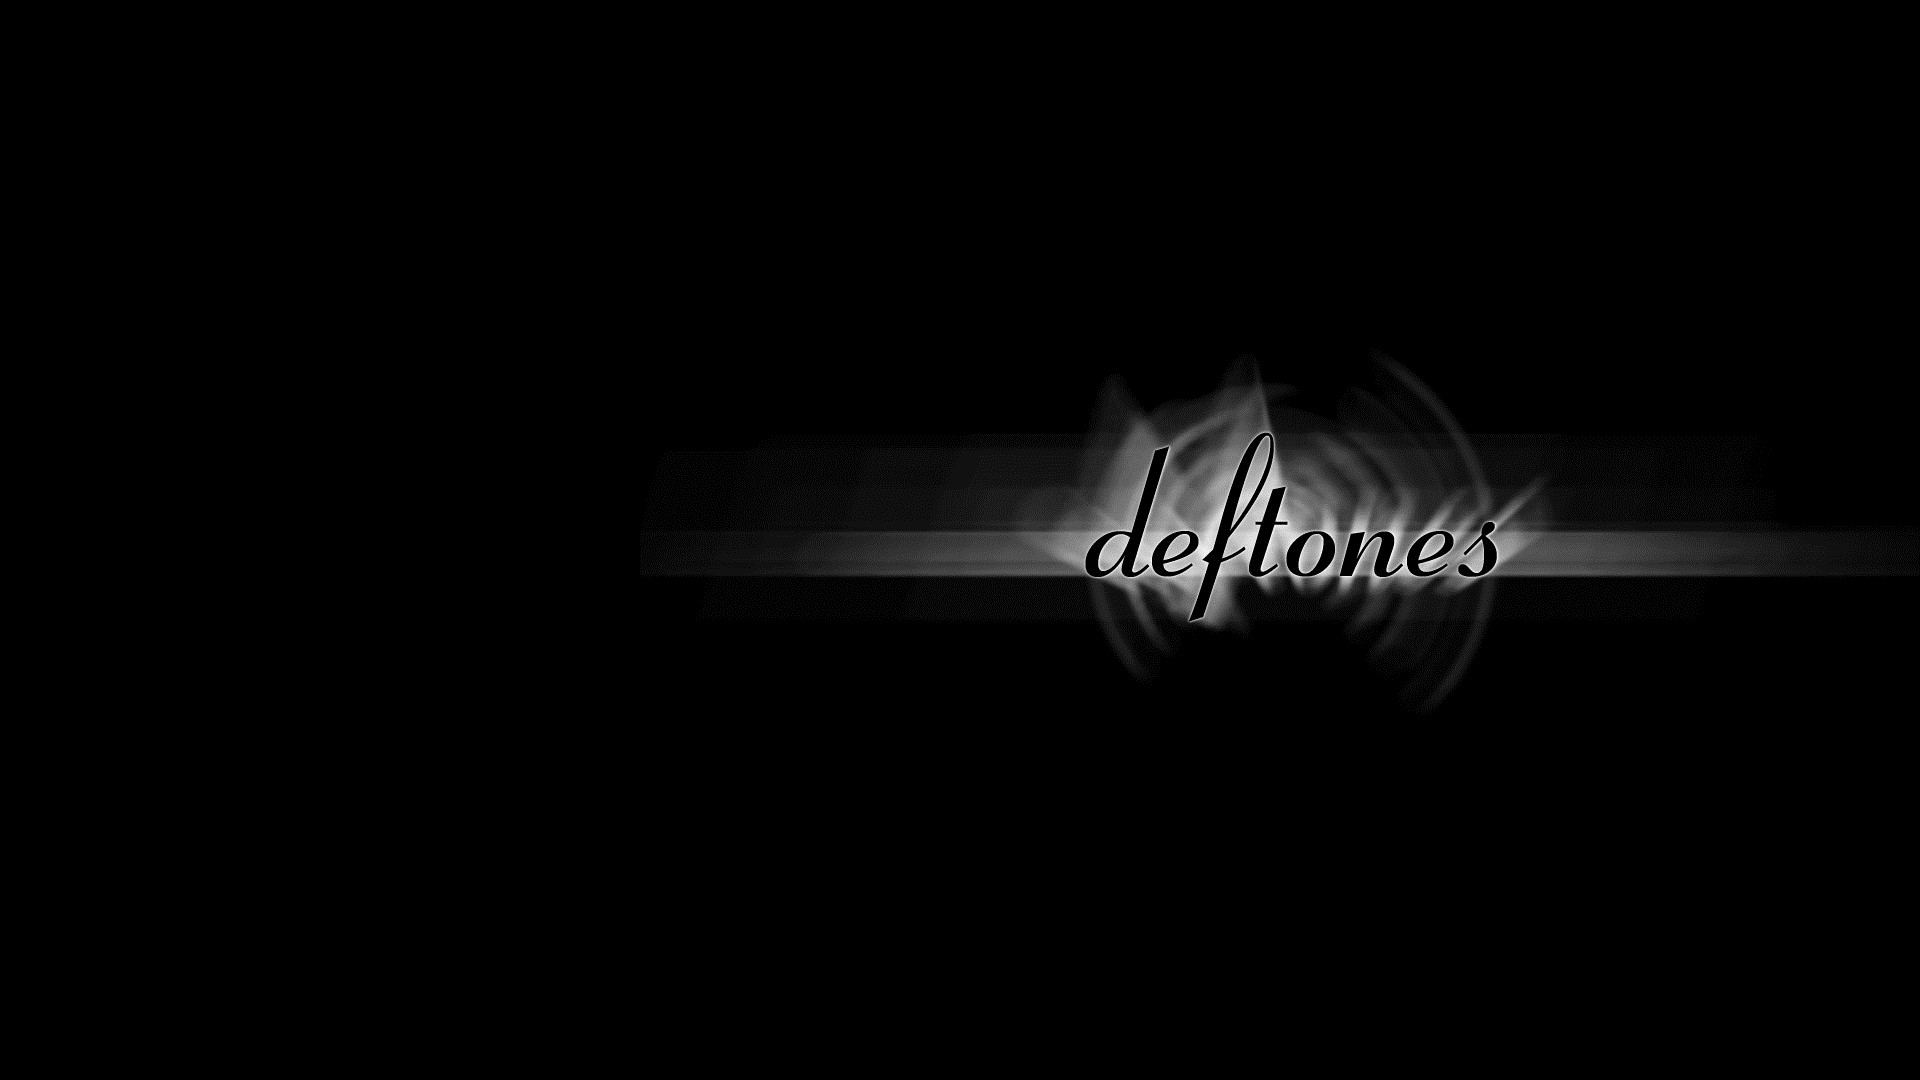 Deftones wallpaper picture hd